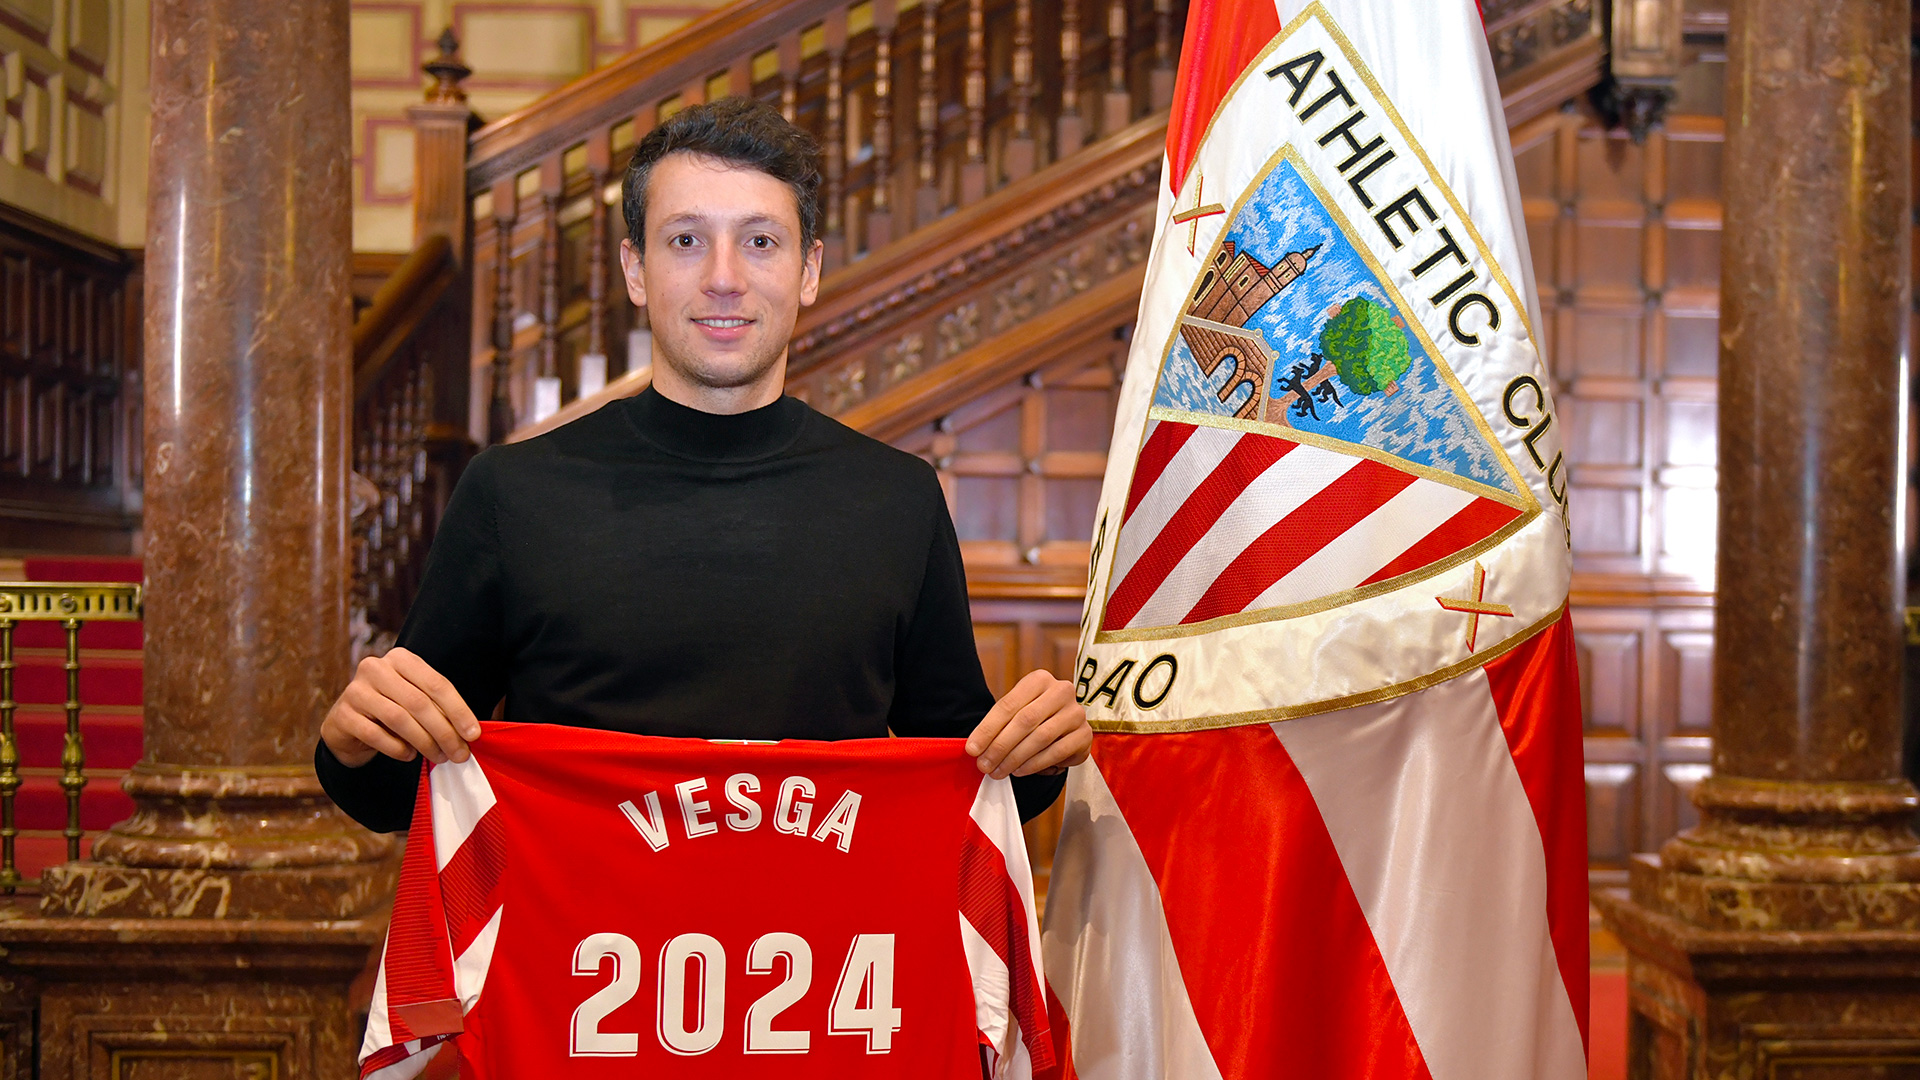 Vesga renews until 2024